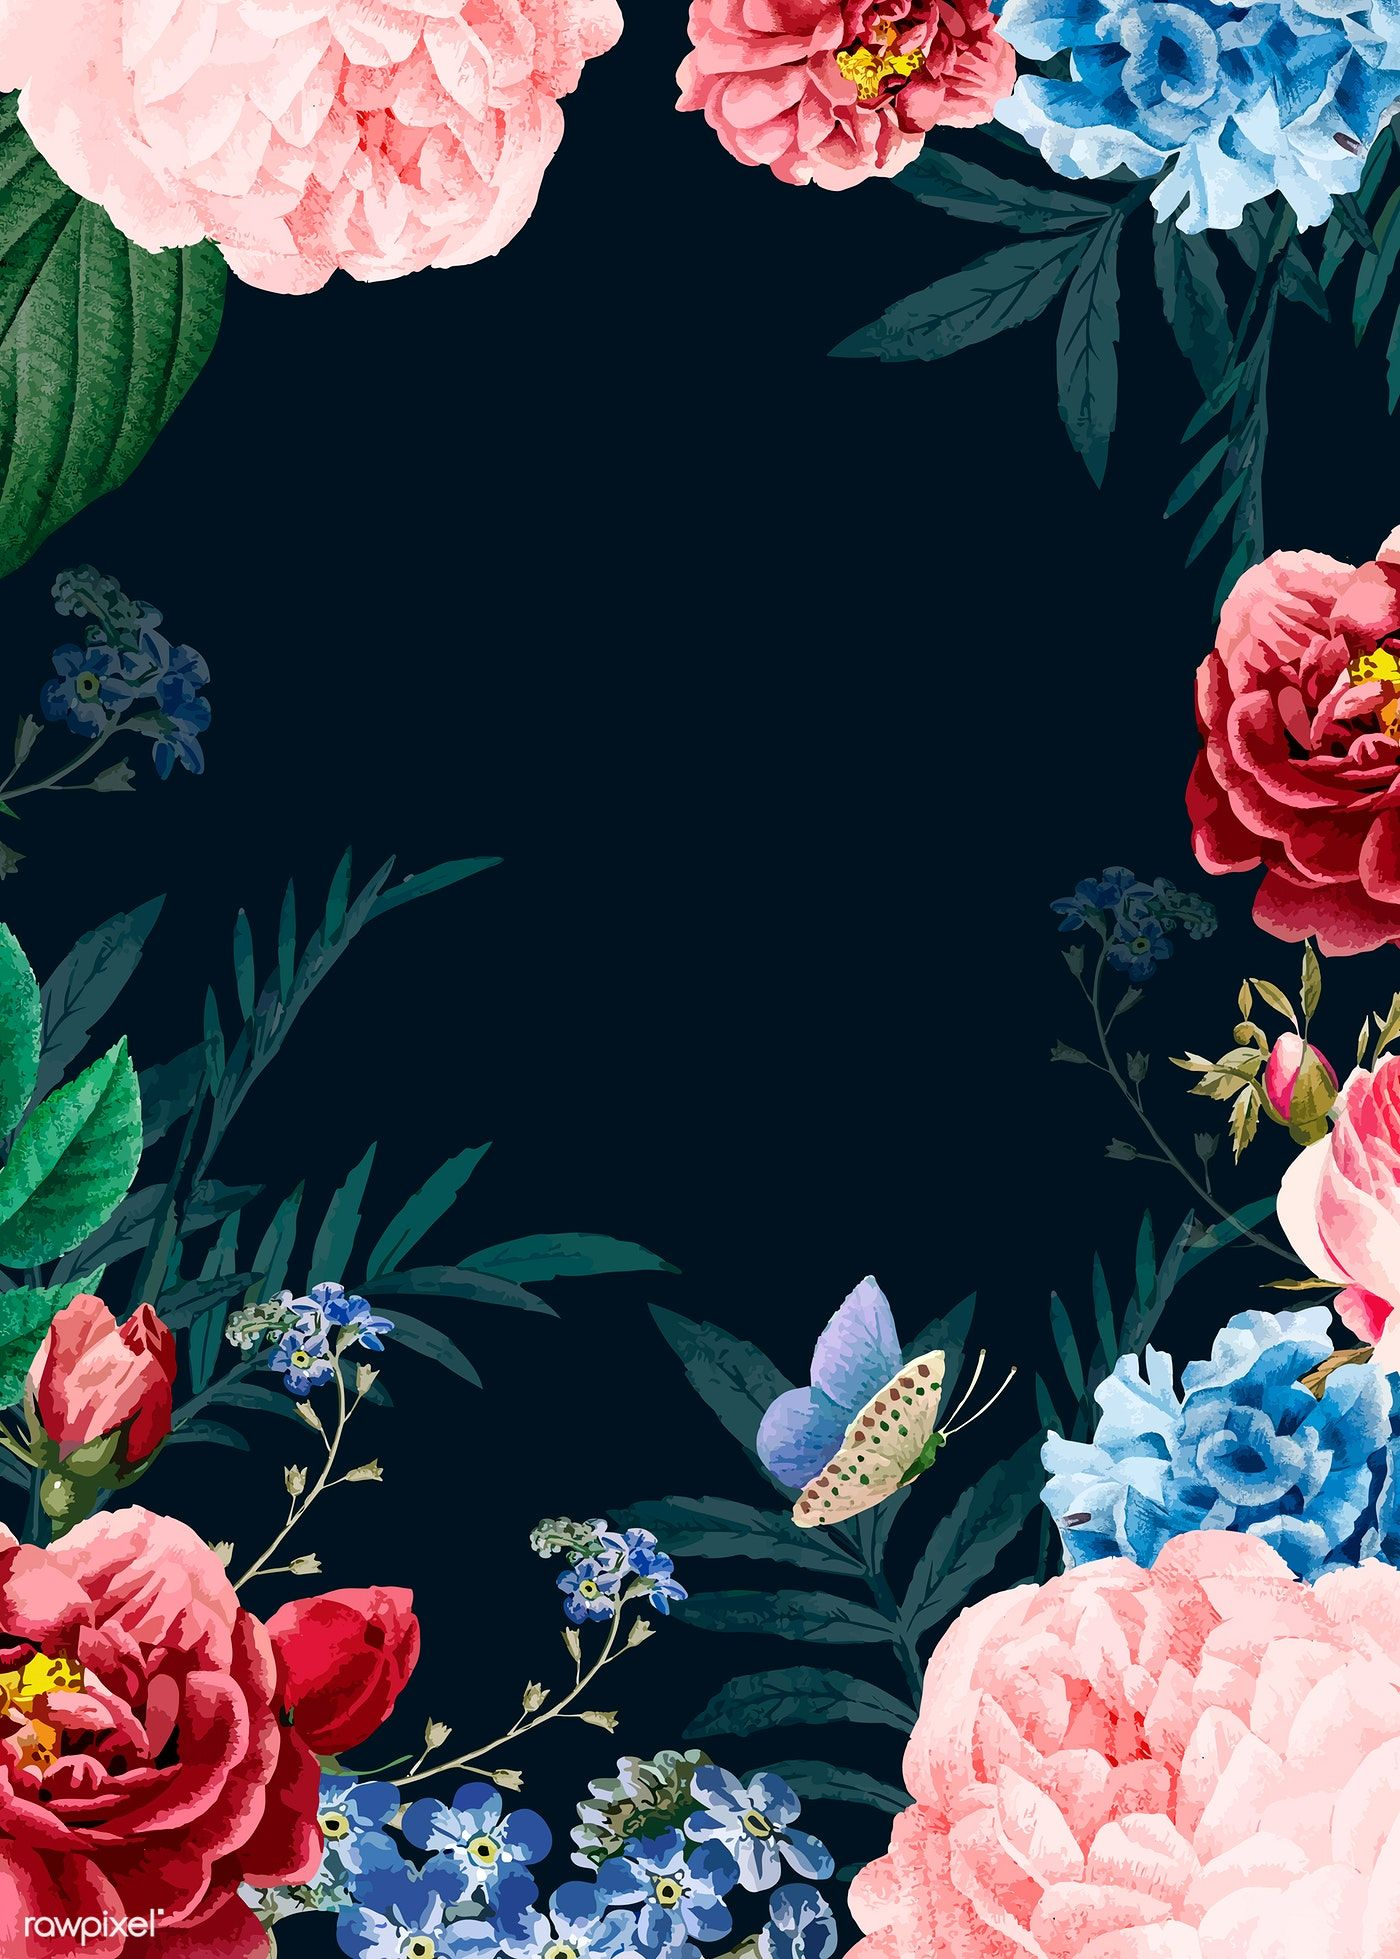 Download premium vector of Blooming elegant floral background 1400x1959